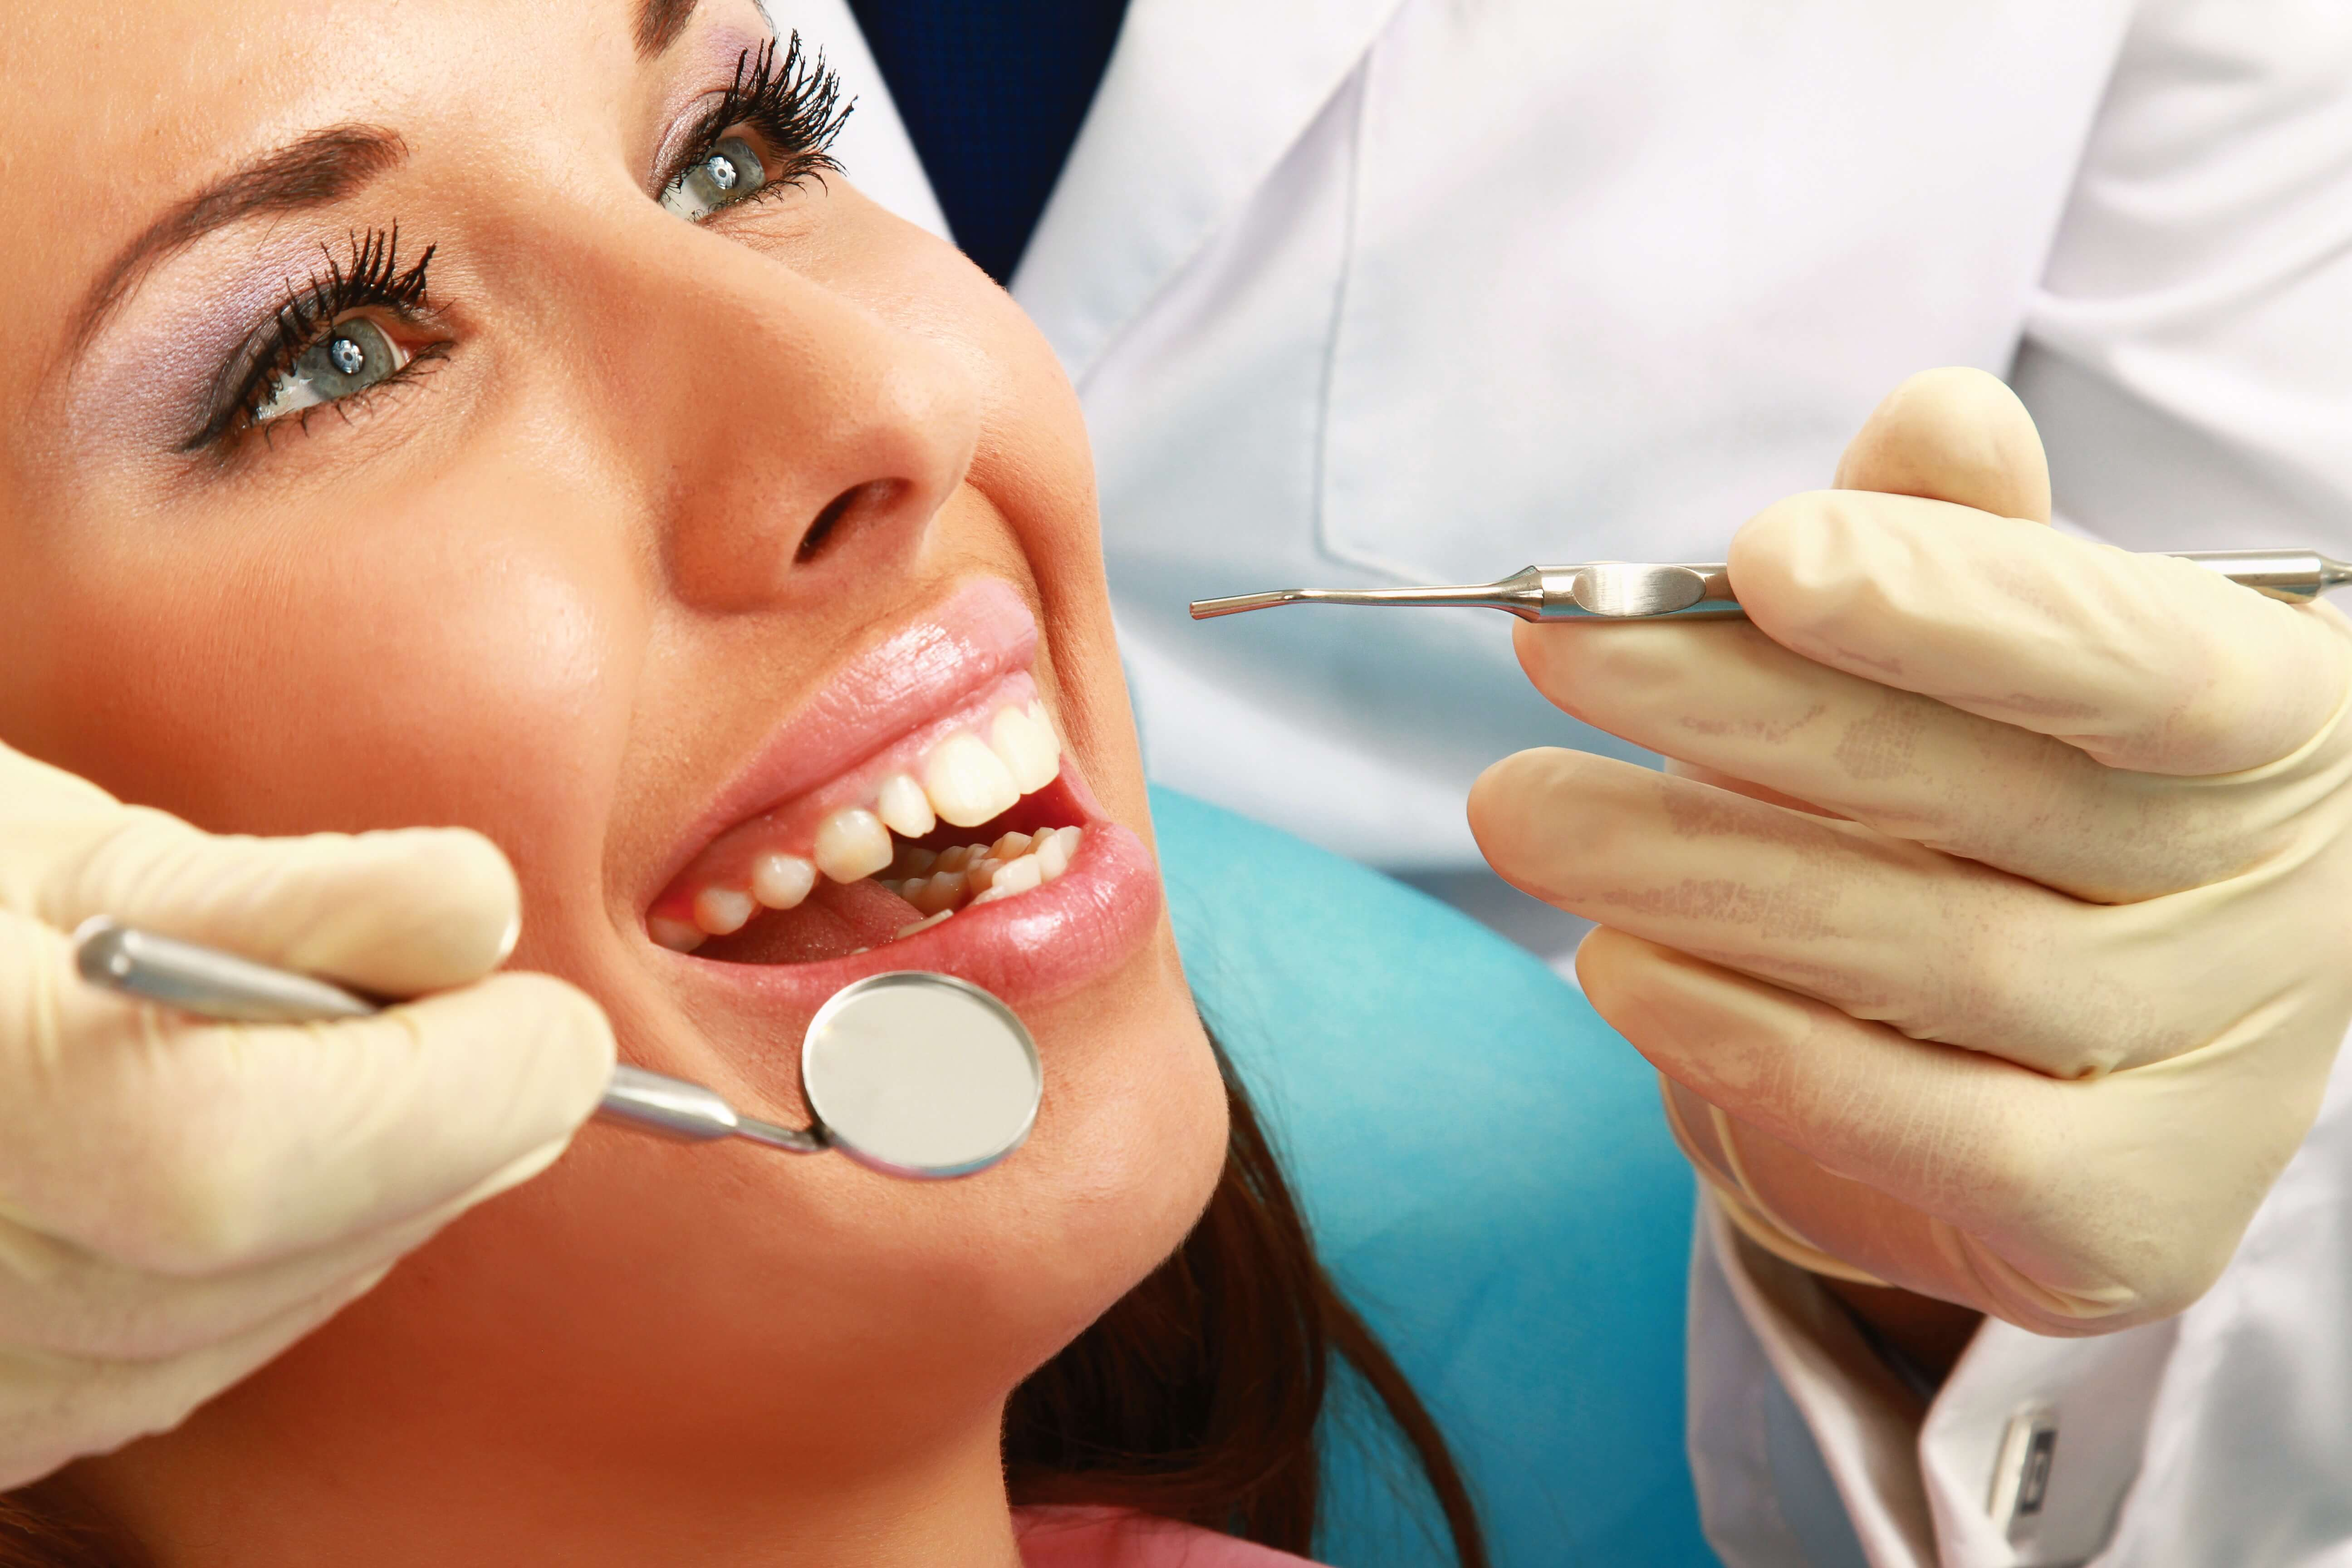 Ask to Qualified Expert: About Oral Dental Health